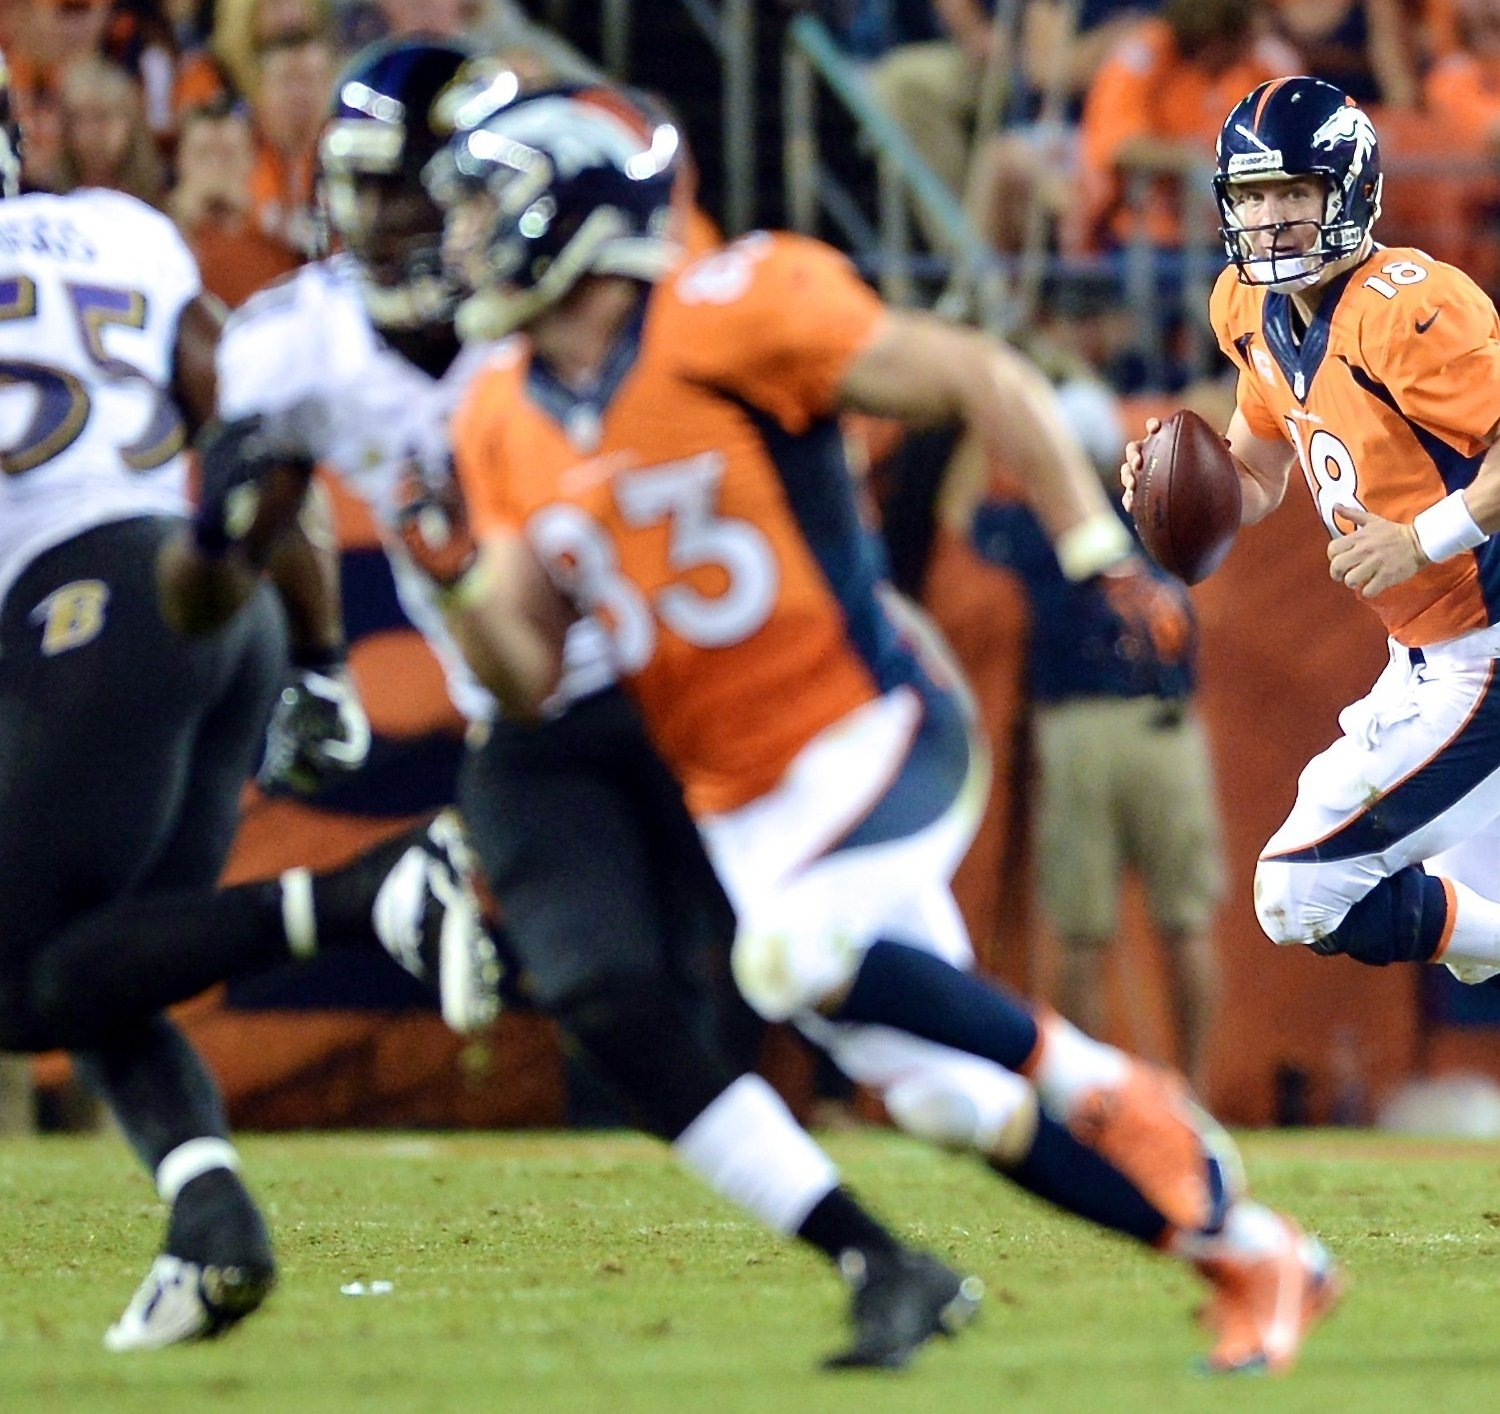 Denver Broncos Re Grading Their Key 2013 Offseason: Why Peyton Manning And Wes Welker Are A Match Made In